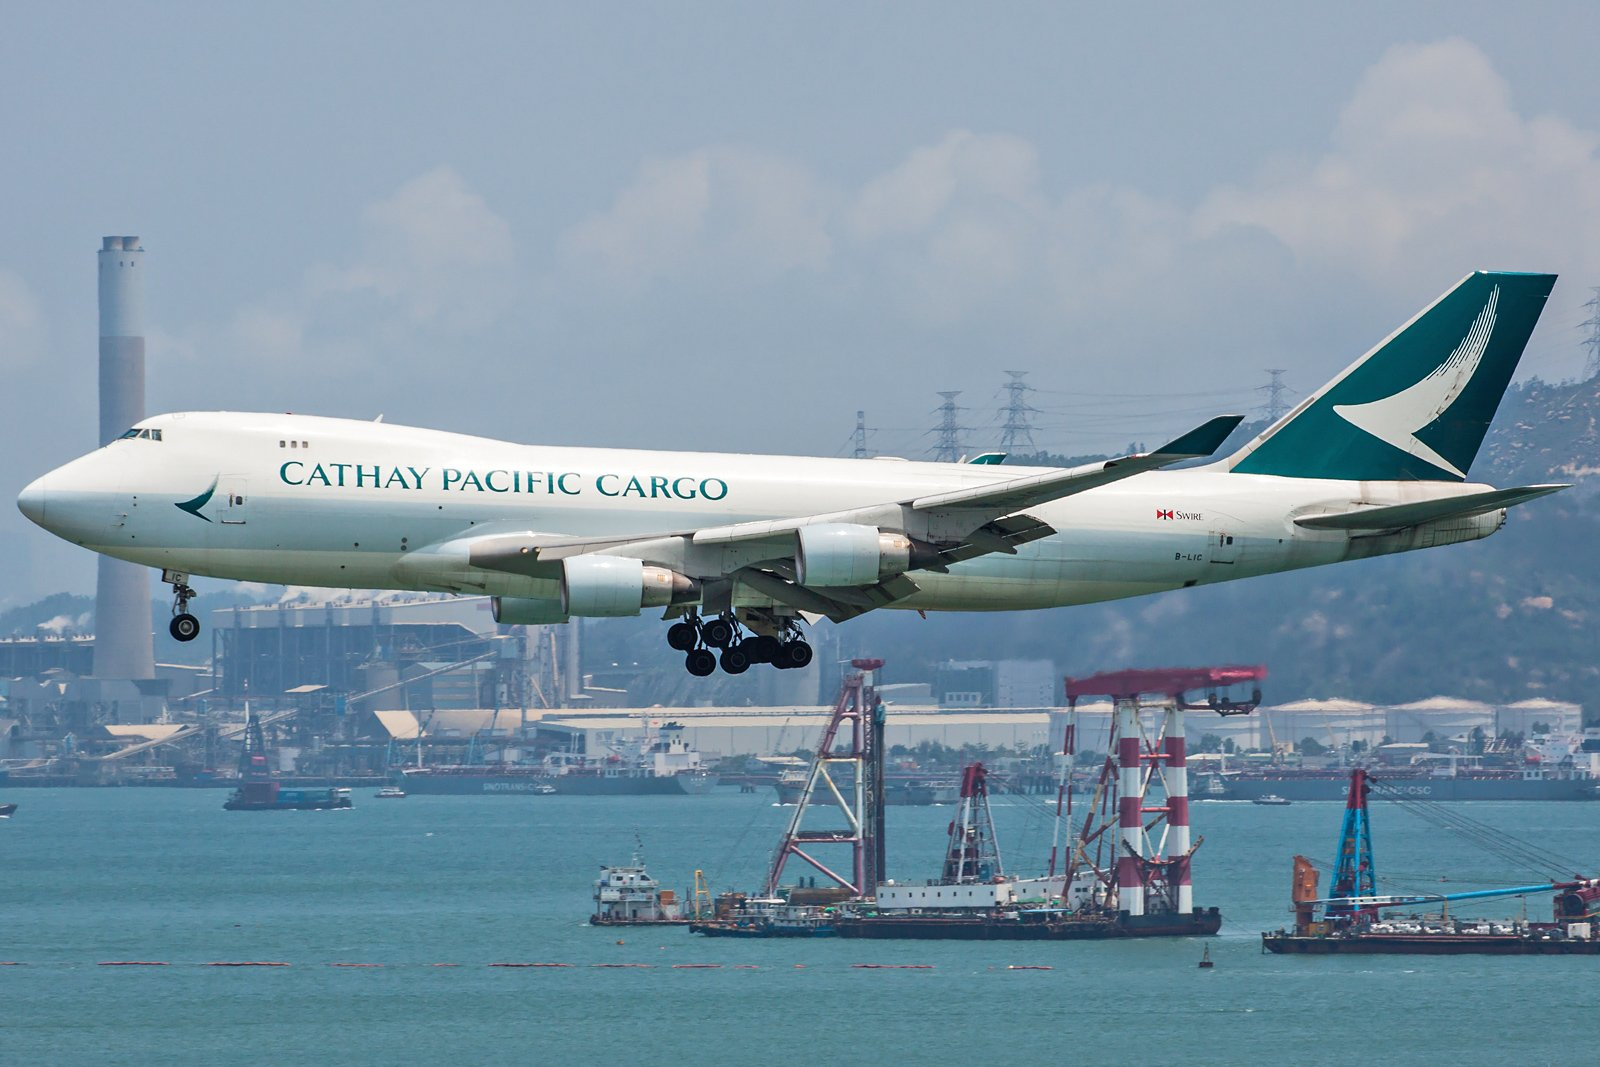 Cathay Pacific Boeing 747-467F(ER) B-LIC